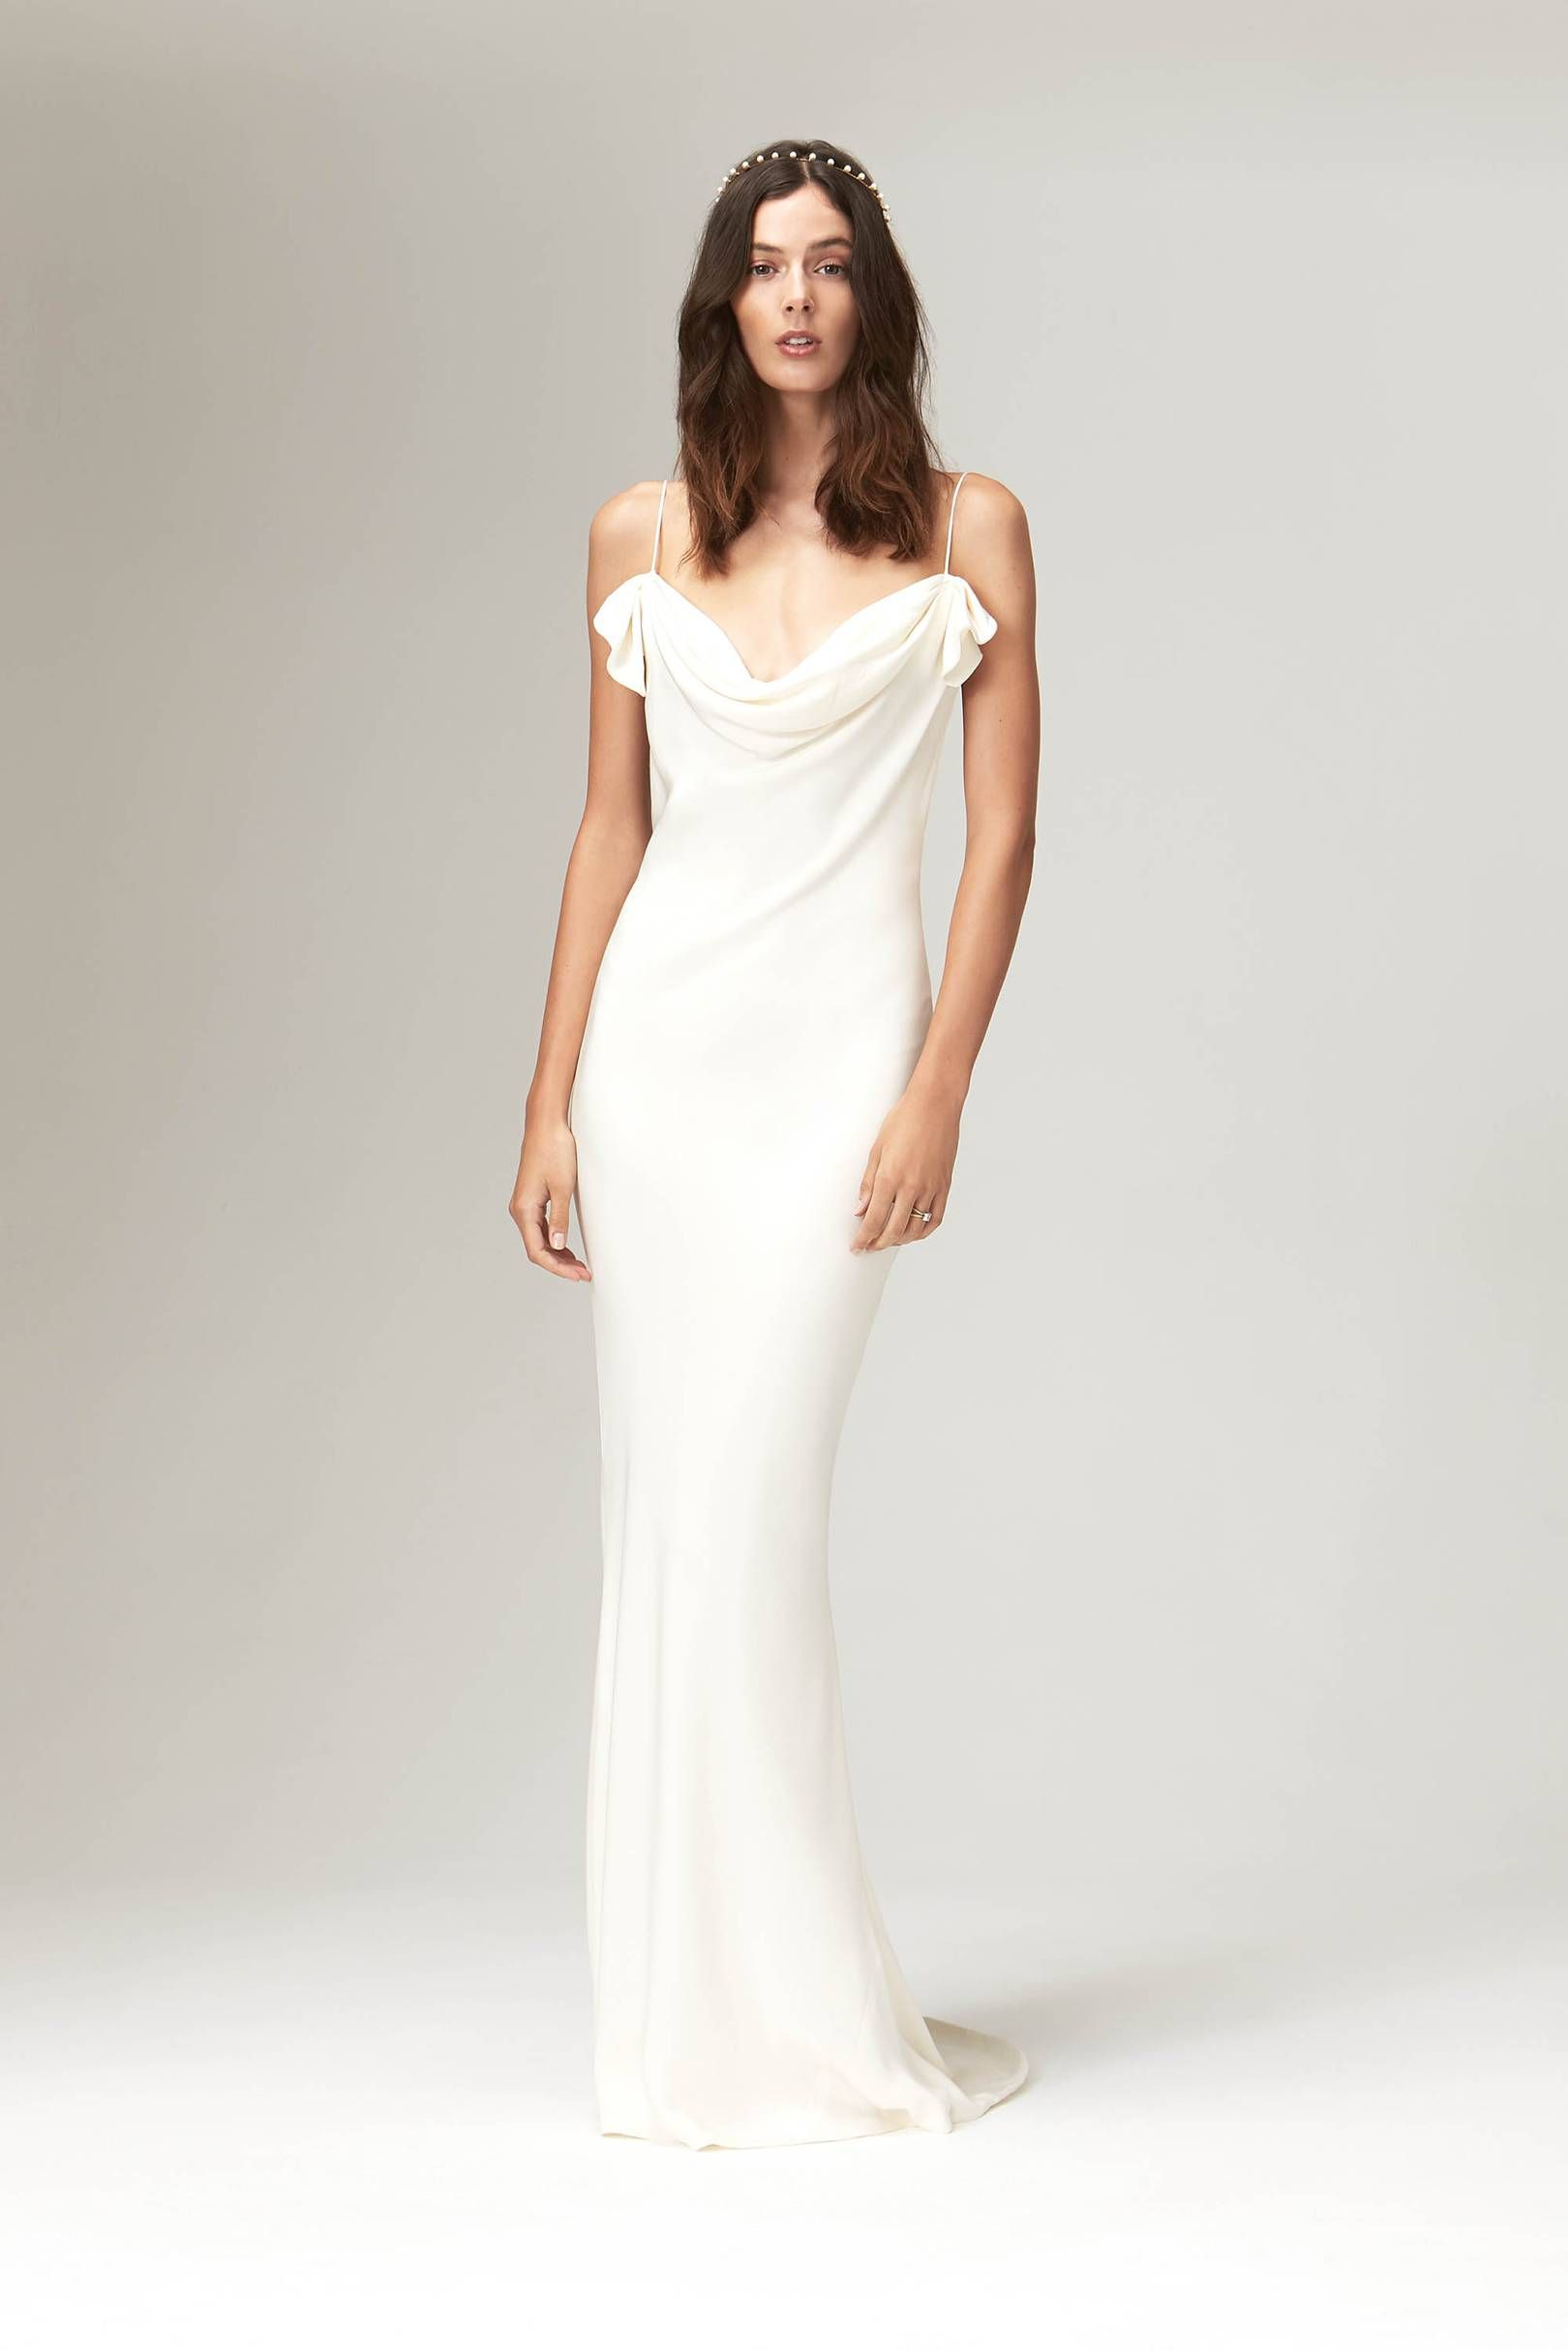 17b0a57d1c09d If you need a vintage-style wedding dress to complete your wedding,  embroidery to sequins, delicate lace, fringing, feathers and beading take a  look at this ...